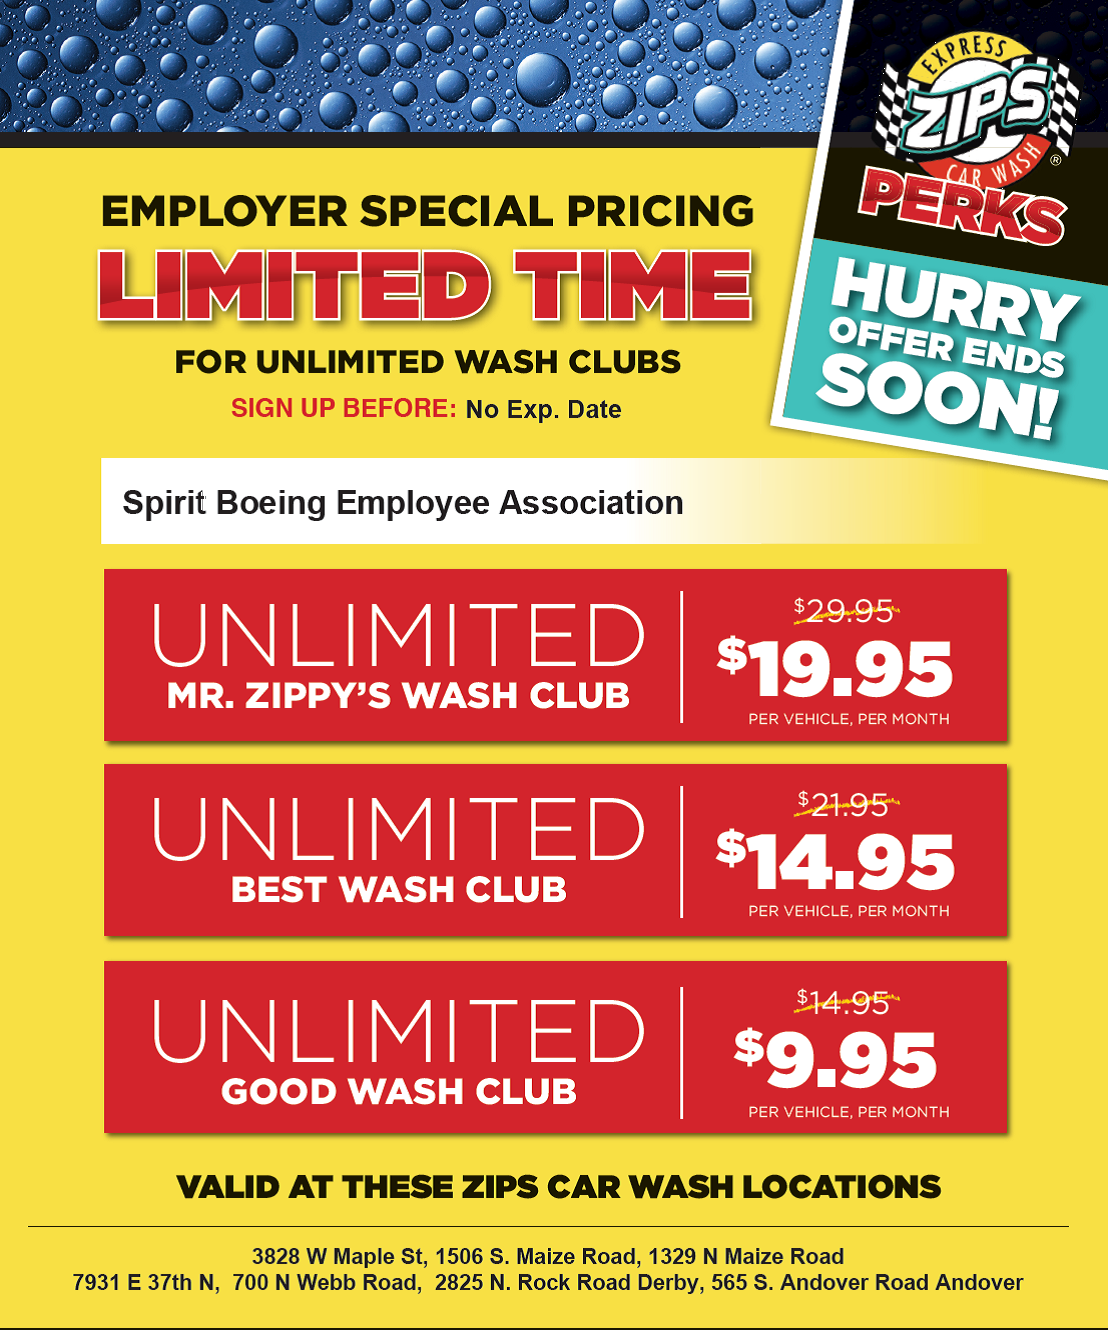 Zipps Car Wash Spirit Boeing Employees Association